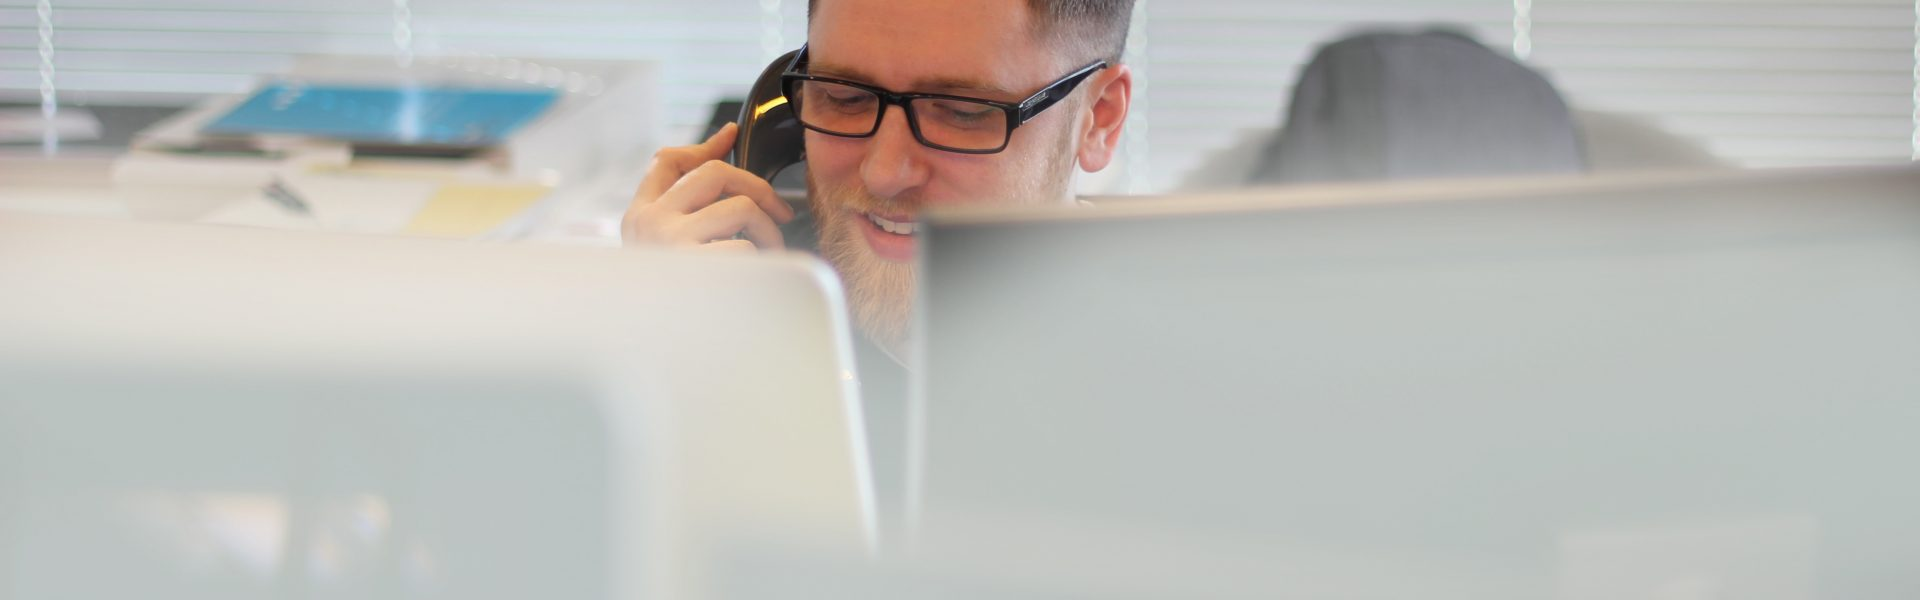 Stock photo of a man on the phone working remotely